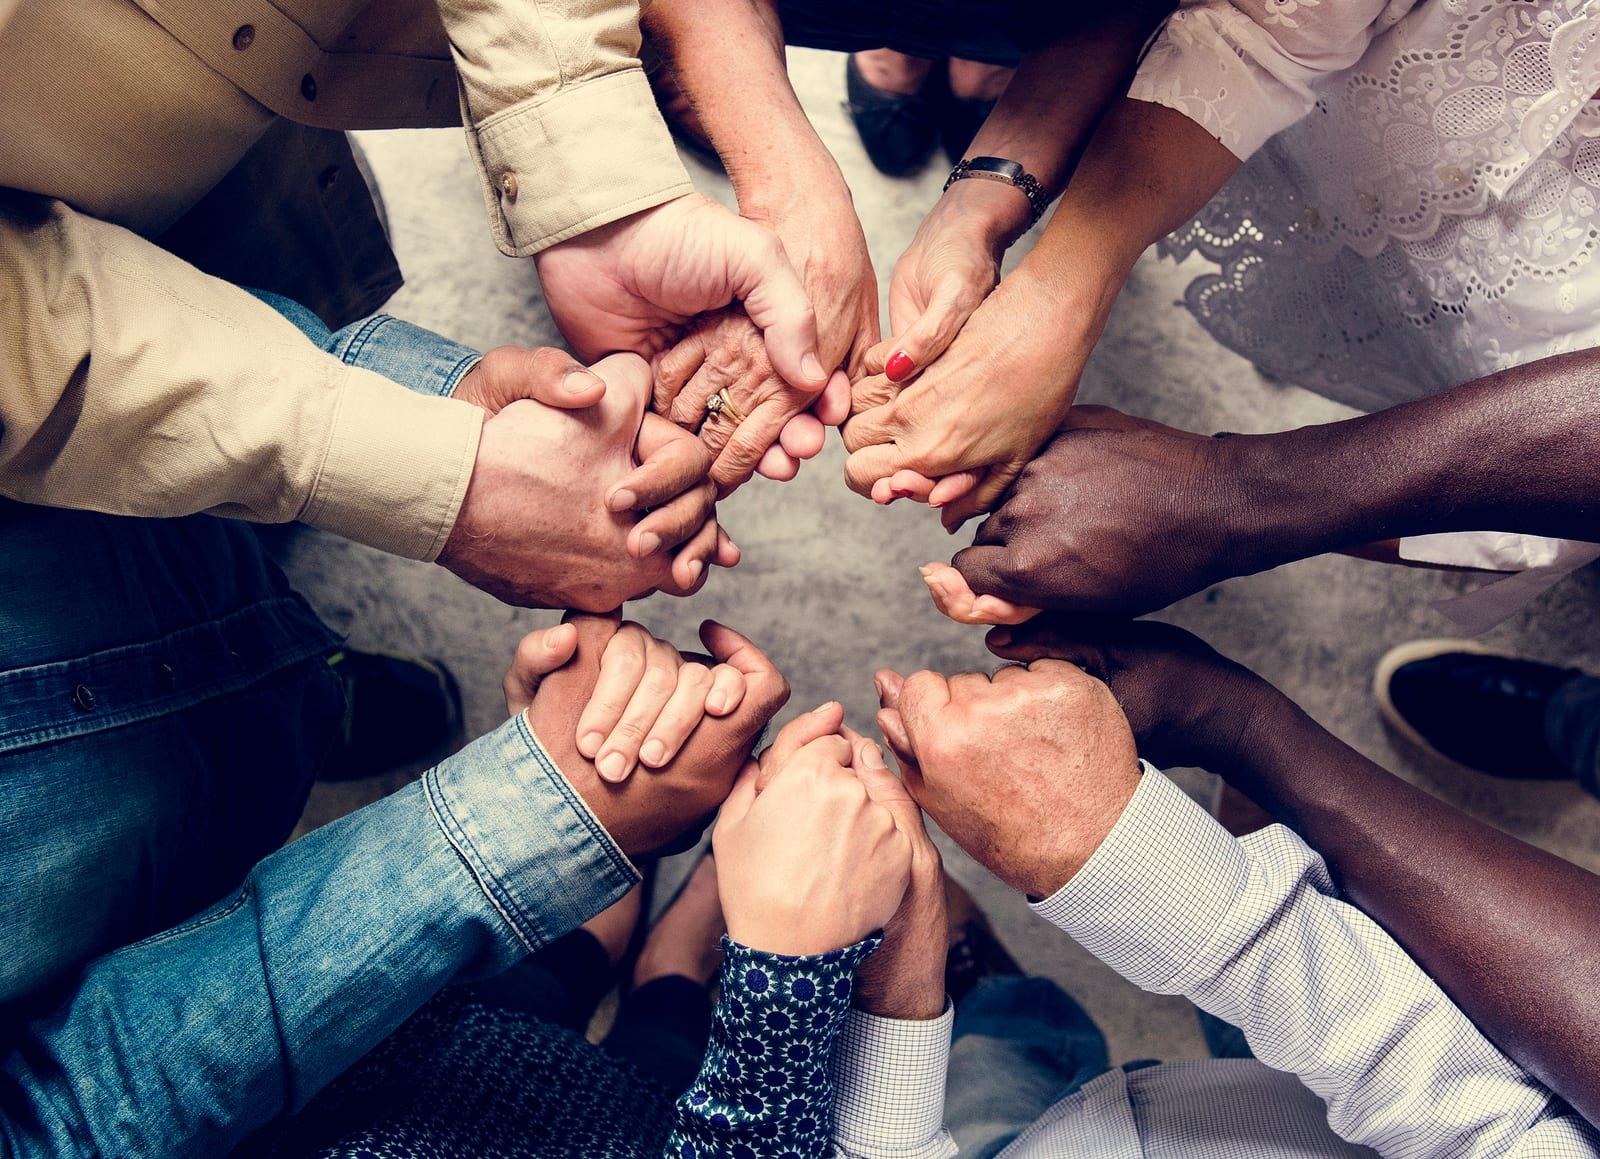 Group of diverse hands holding each other